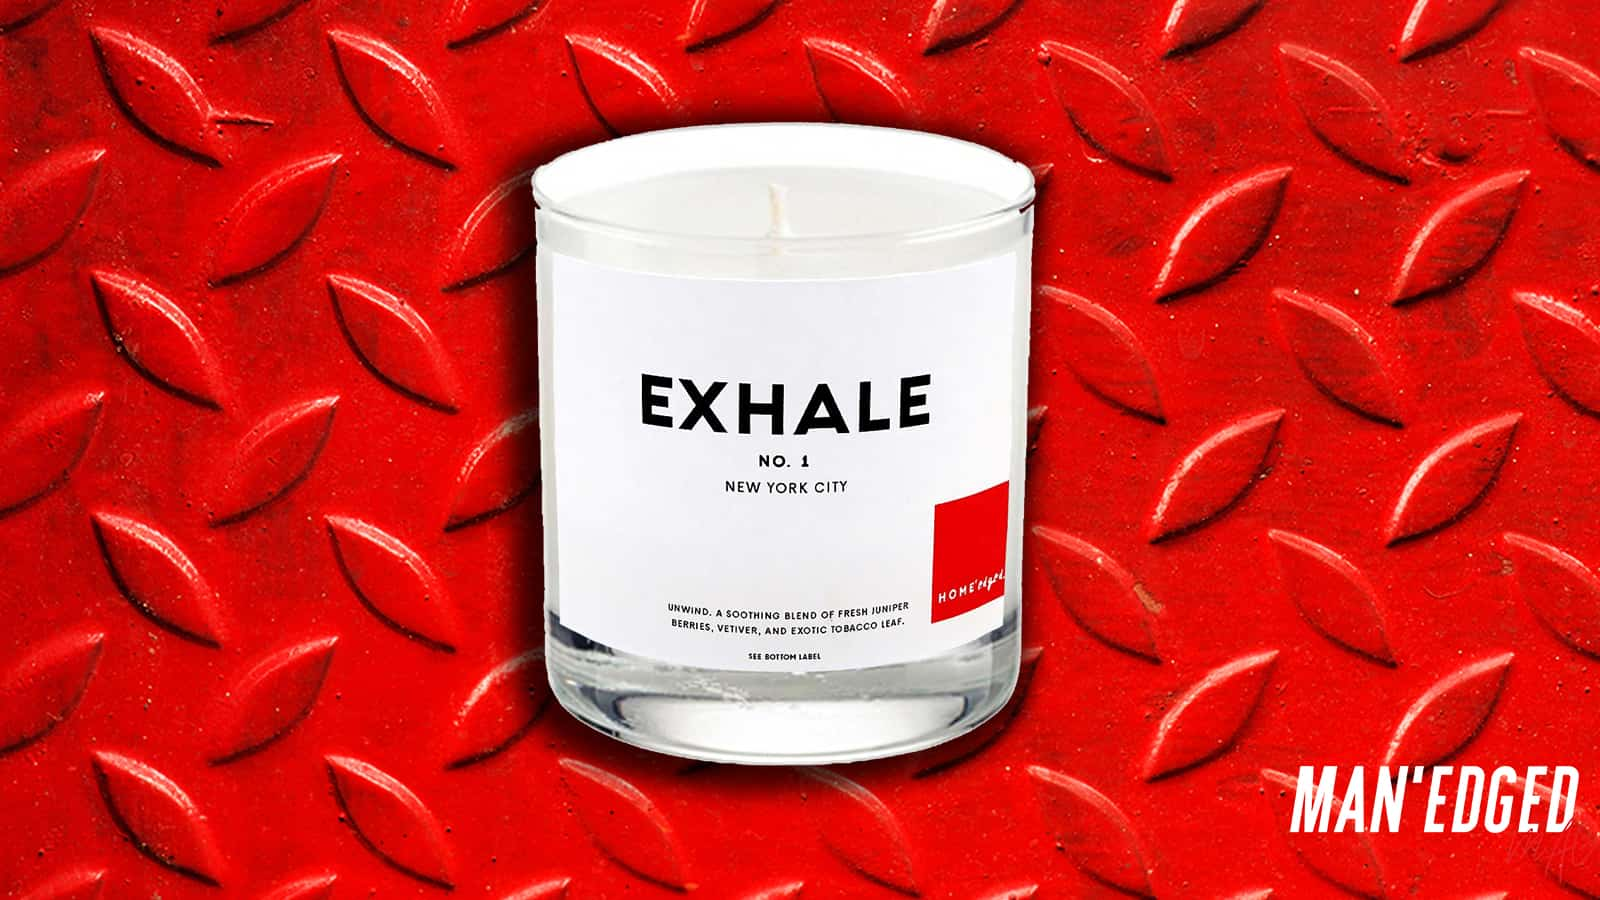 The best gifts for men - our top 19 gifting ideas that guys will love - Exhale no.1 candle from HOME'edged NYC all natural luxury candle.